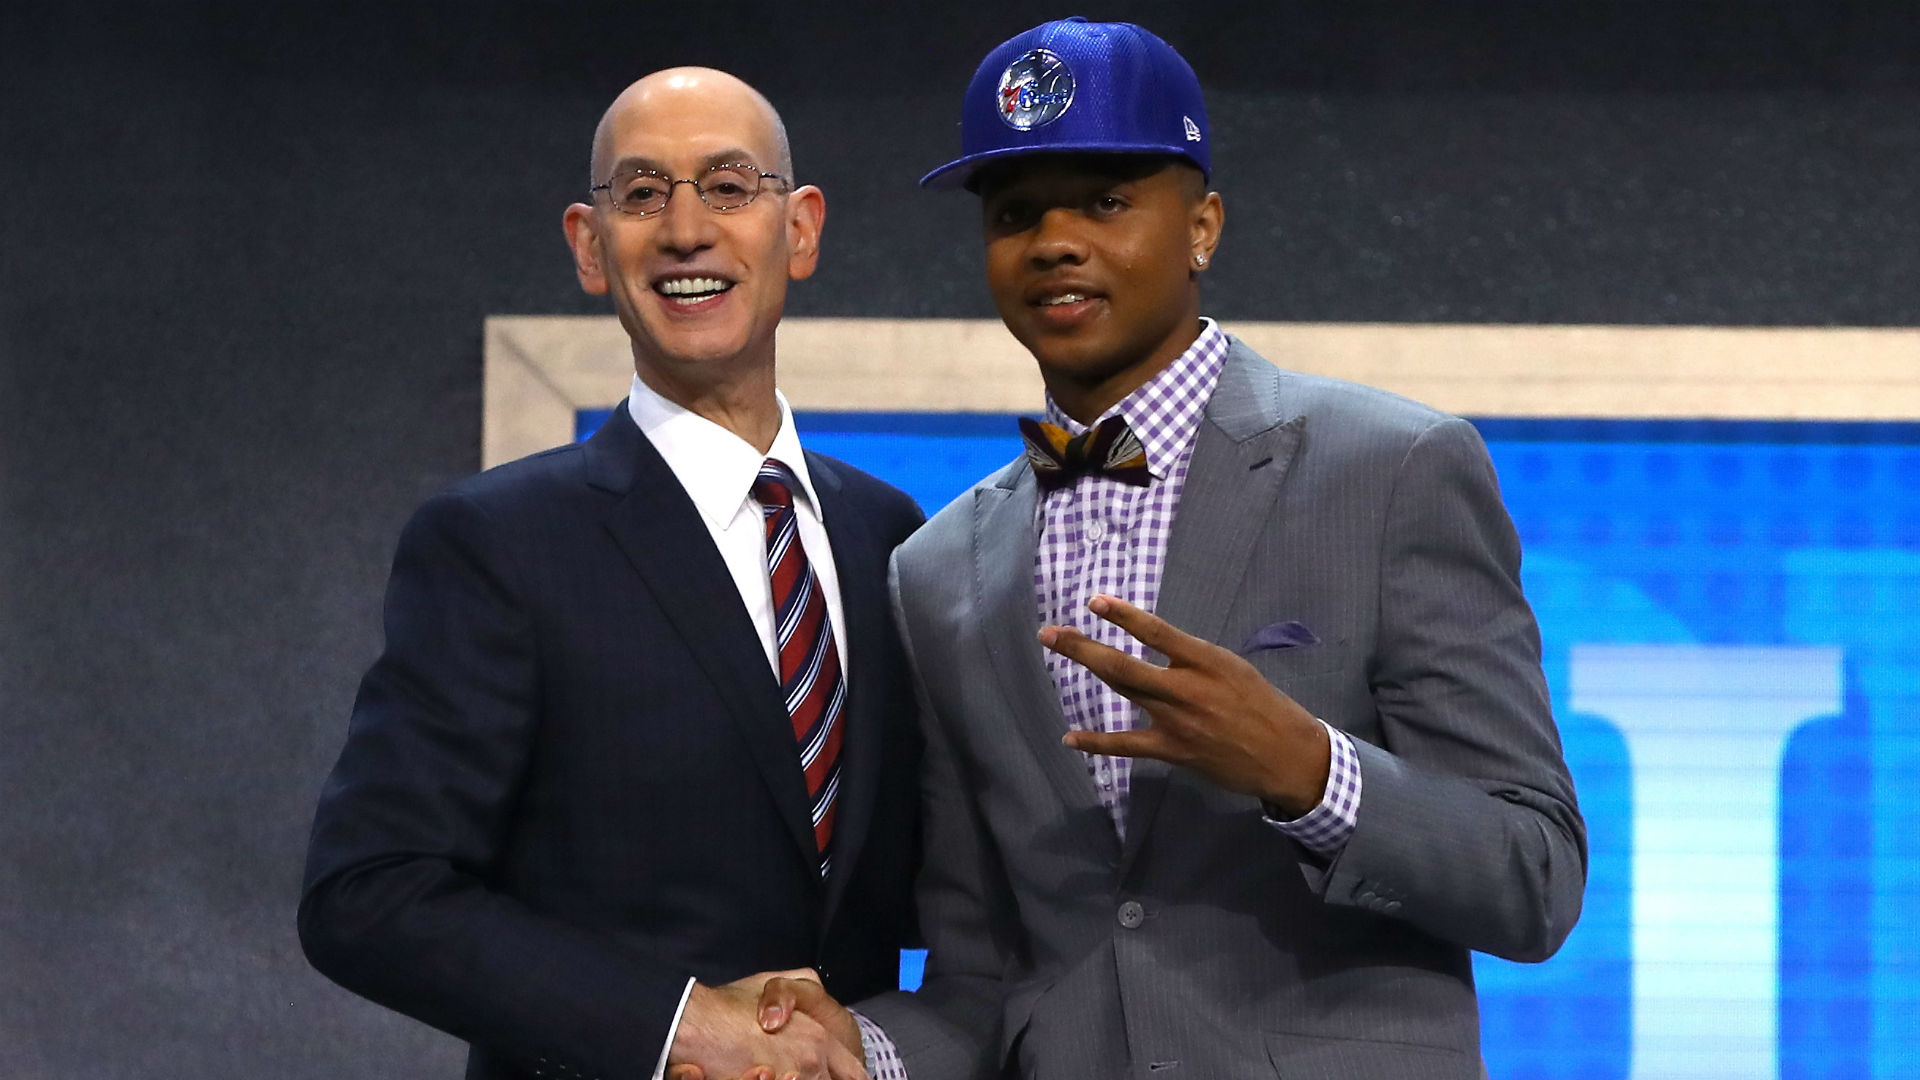 Sixers make Fultz top pick, Lakers snag Ball second